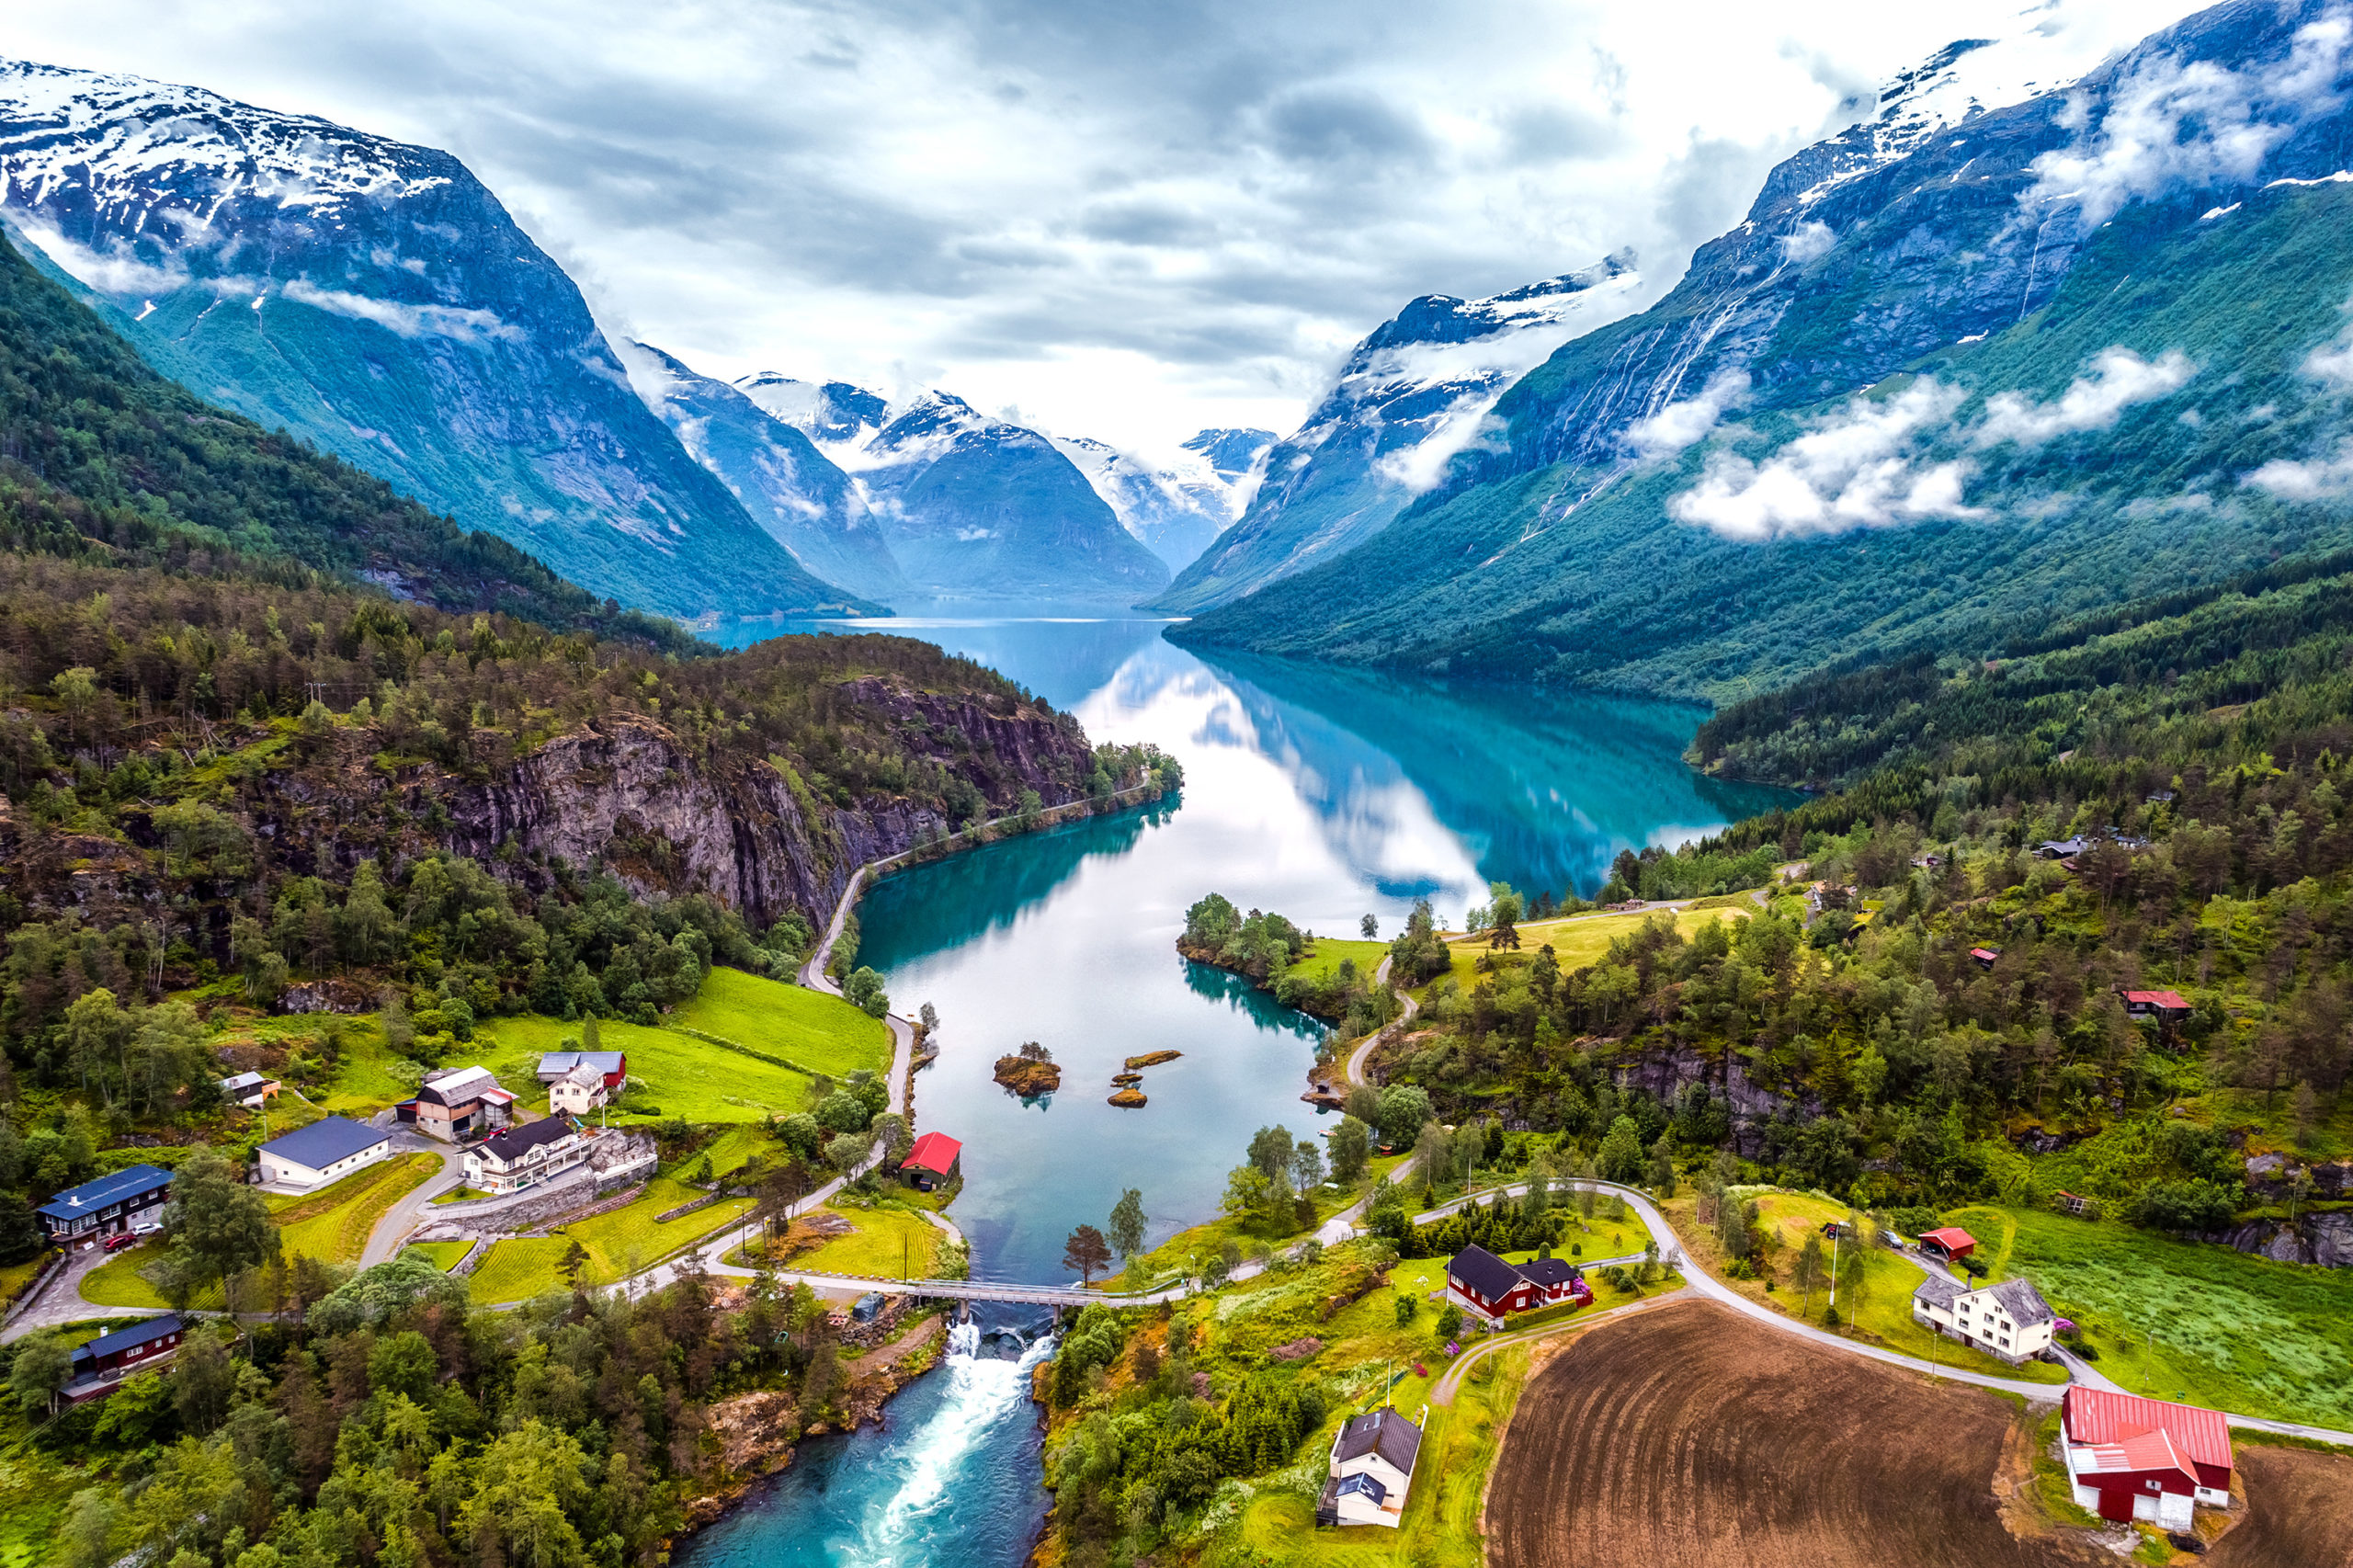 A small town in front of the mountains of Norway